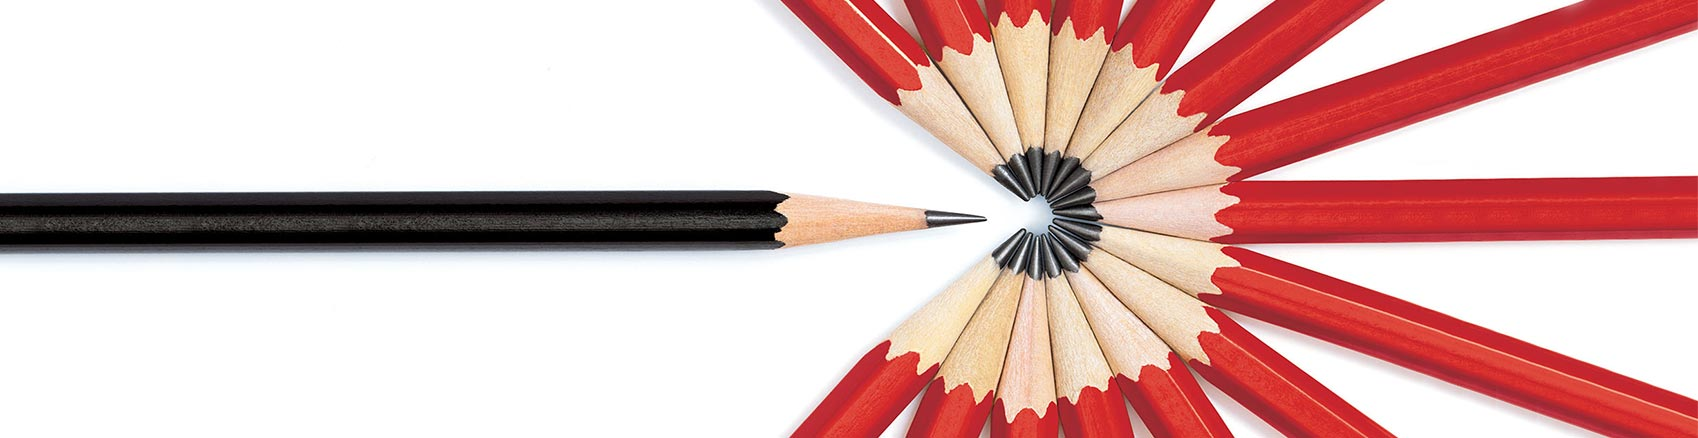 Graphic Design and Strategic Marketing Always Start with Cool Creative Ideas